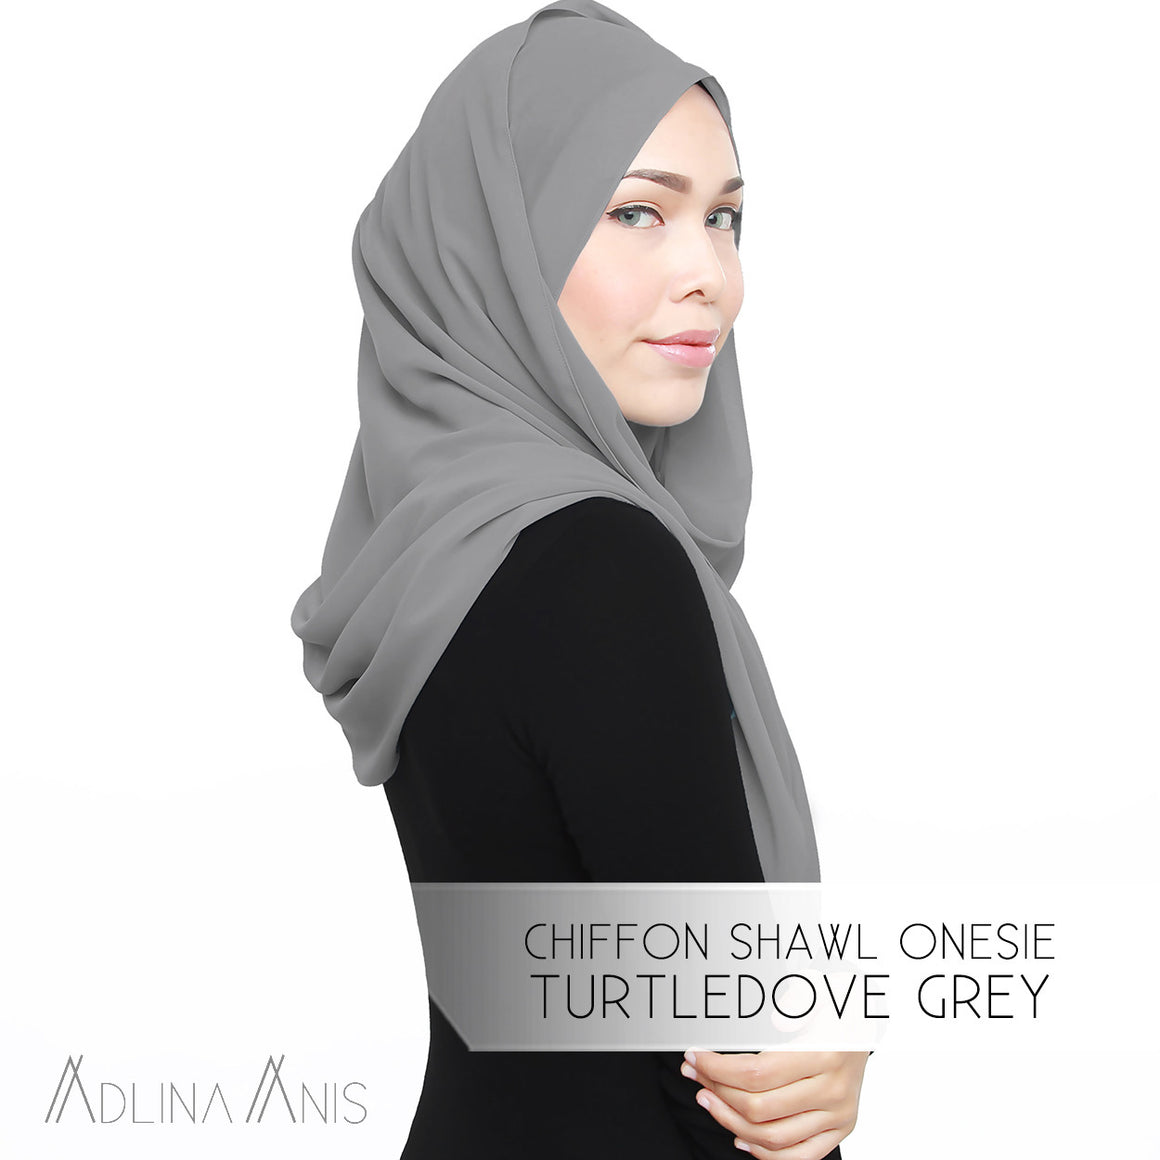 Chiffon Shawl Onesie - Turtledove Grey